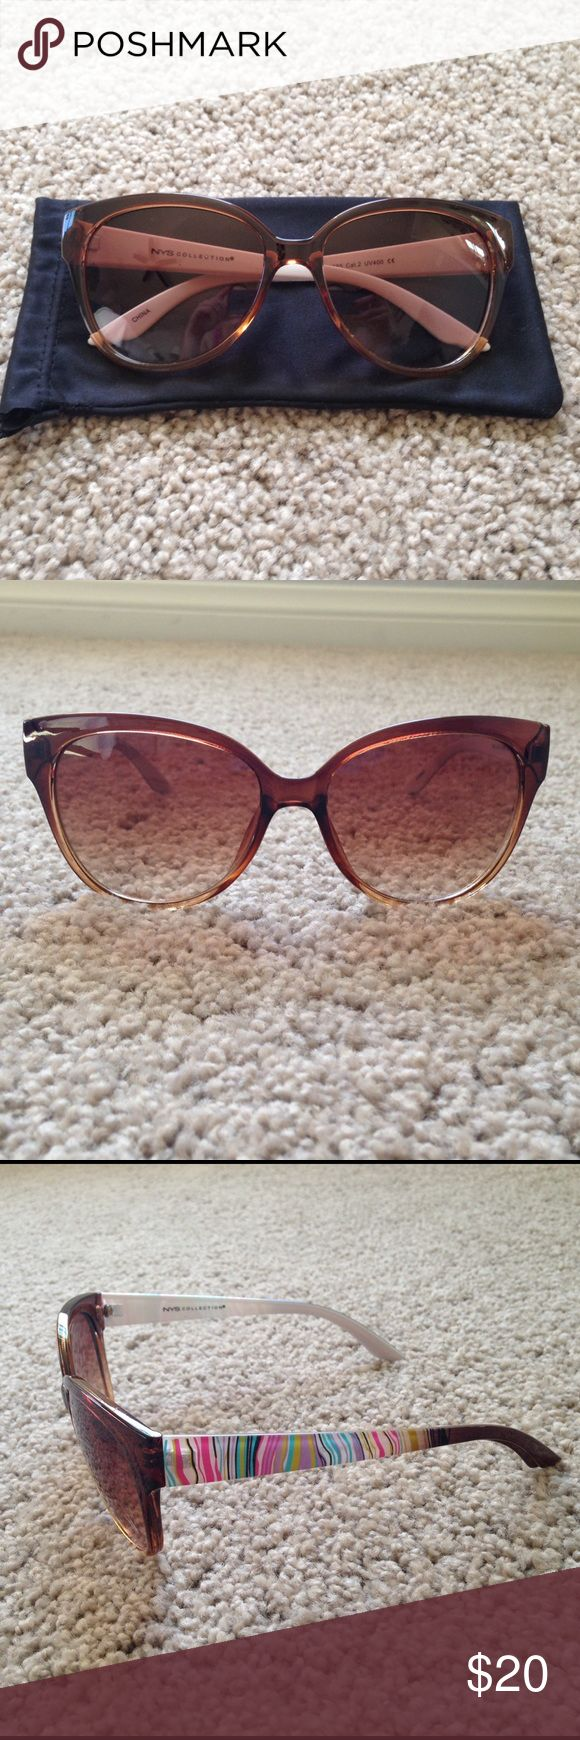 NWOT NYS Sunglasses NWOT!!! Never worn!!! NYS collection sunglasses! Brown frame with colorful stripped bows! These are adorable!!! Comes with pouch for protection!! Accessories Sunglasses